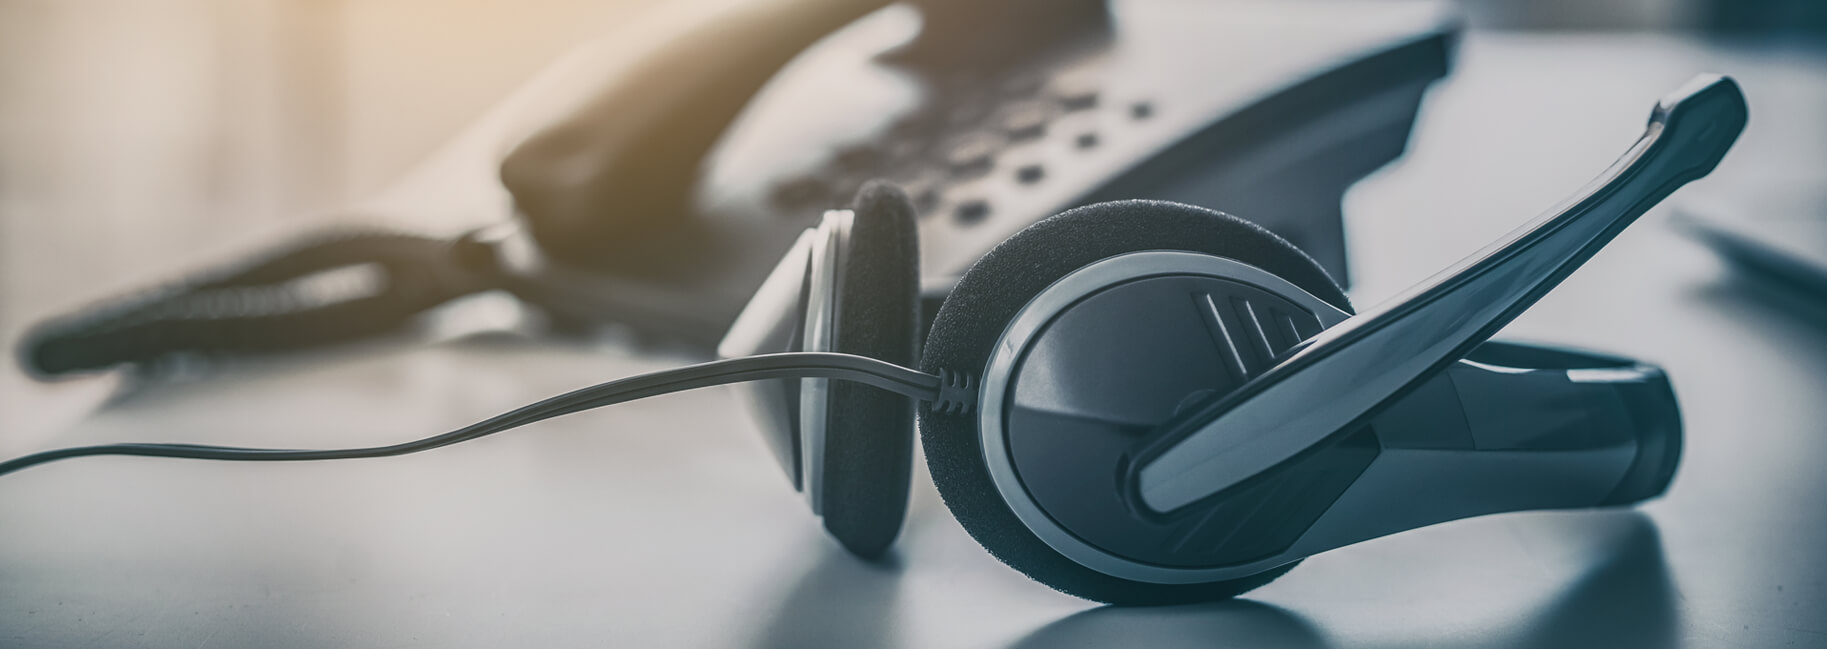 Contact Center Playbook - OttoLearn Adaptive Microlearning